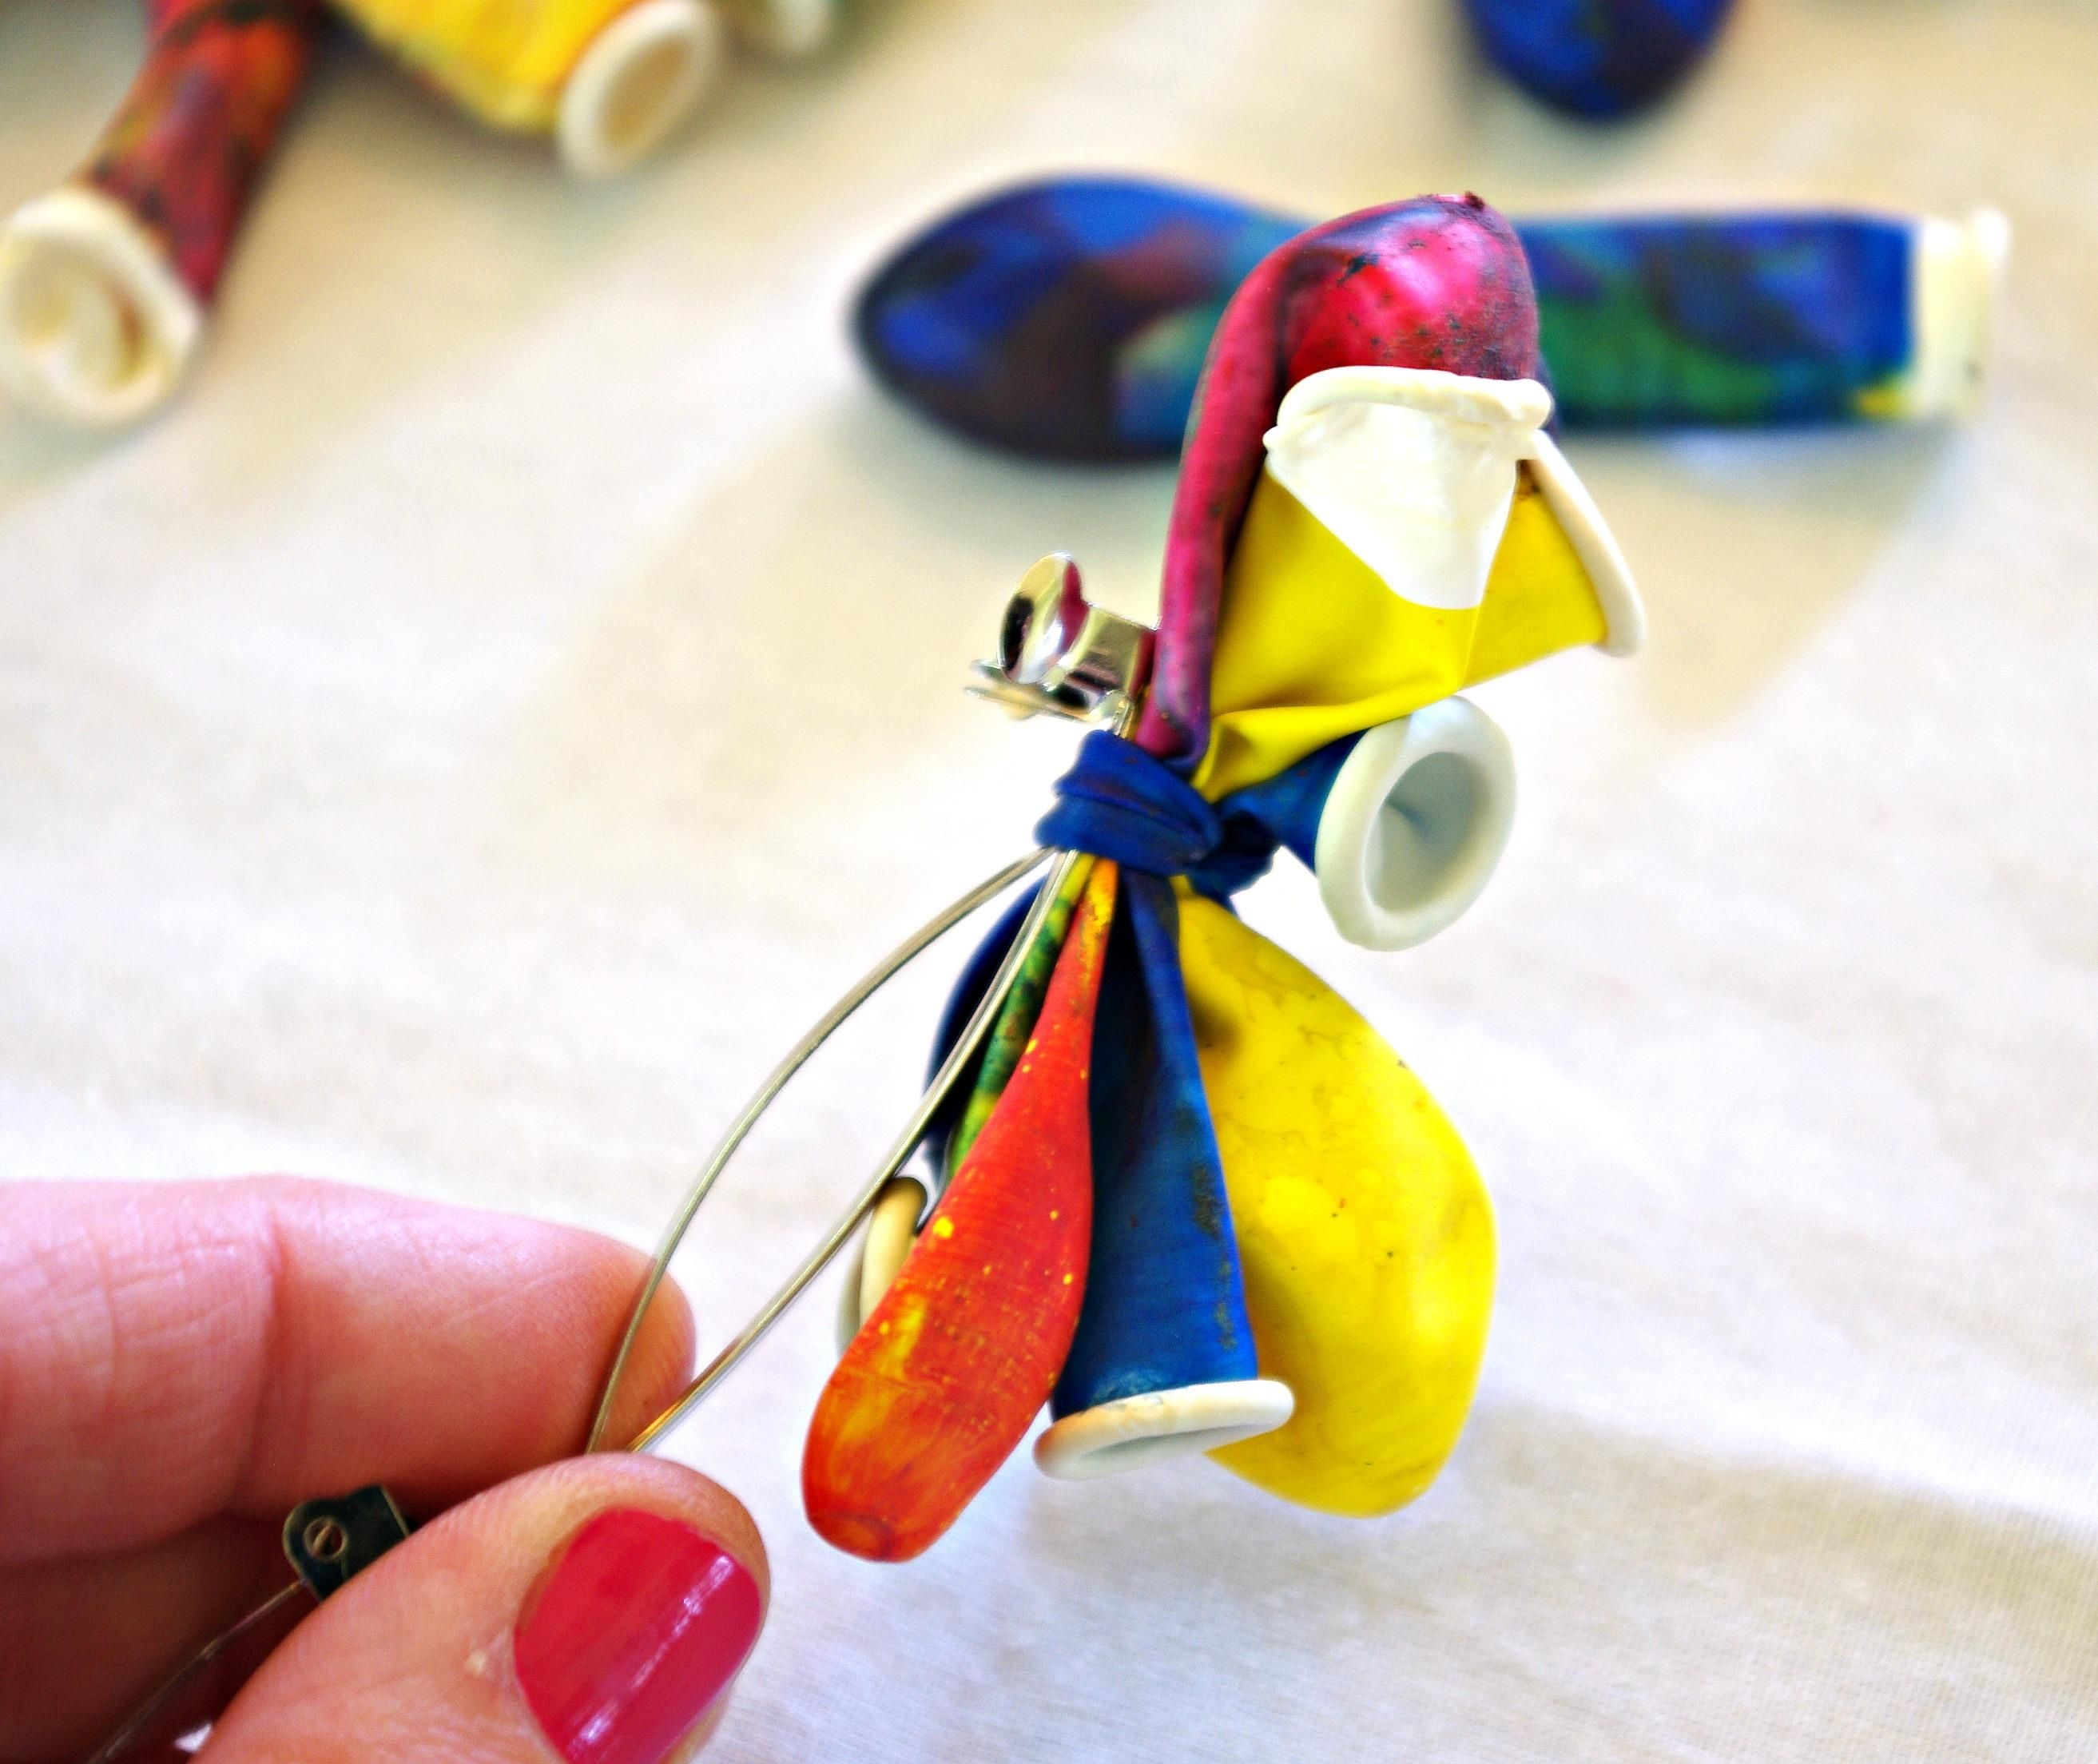 Stunning do it yourself kids crafts youll love solutioingenieria Gallery